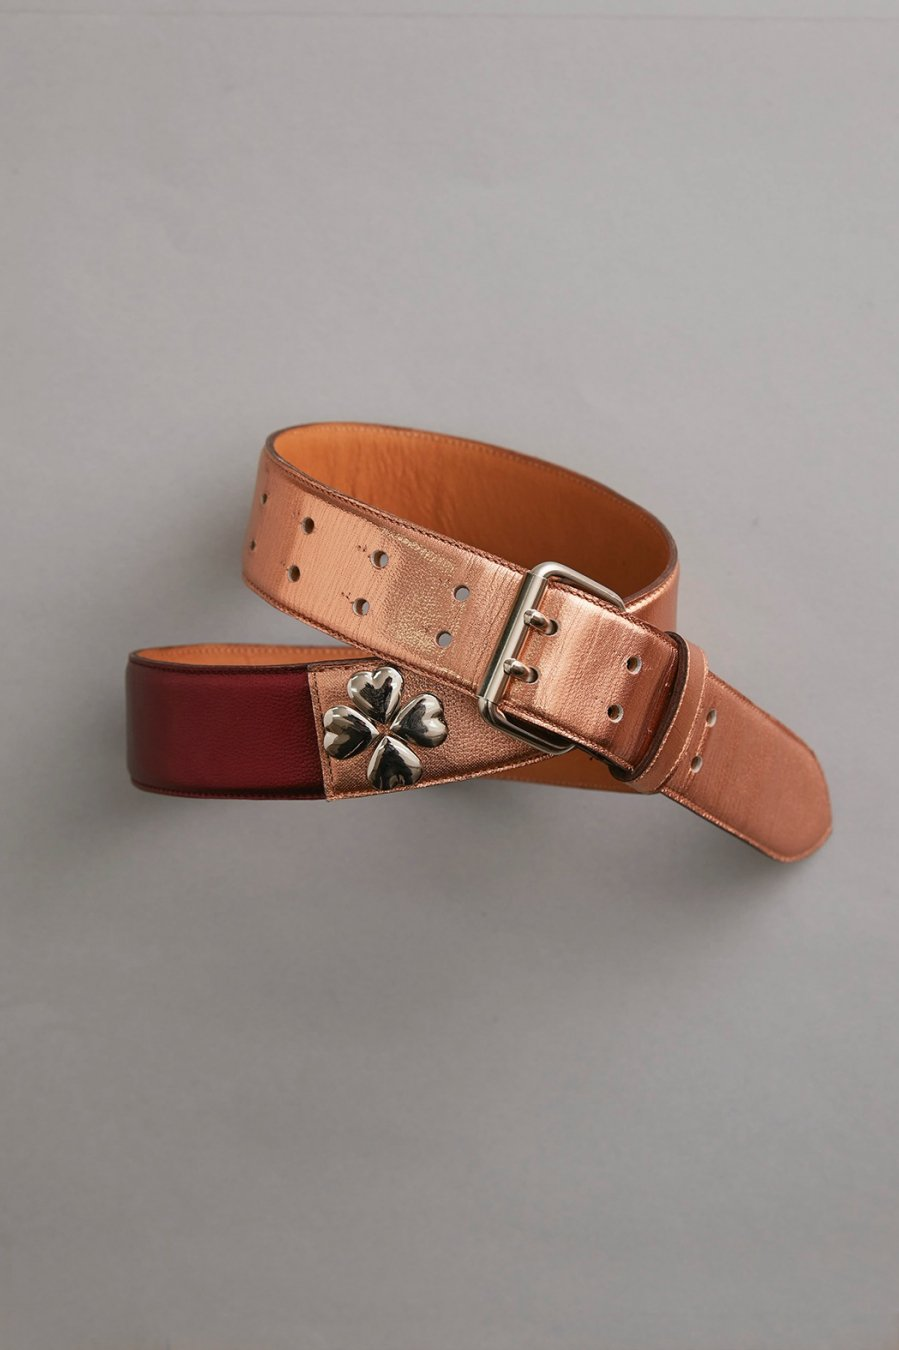 MASU  CLOVER STUDS BELT(WINE & CHAMPAGNE)<img class='new_mark_img2' src='https://img.shop-pro.jp/img/new/icons15.gif' style='border:none;display:inline;margin:0px;padding:0px;width:auto;' />